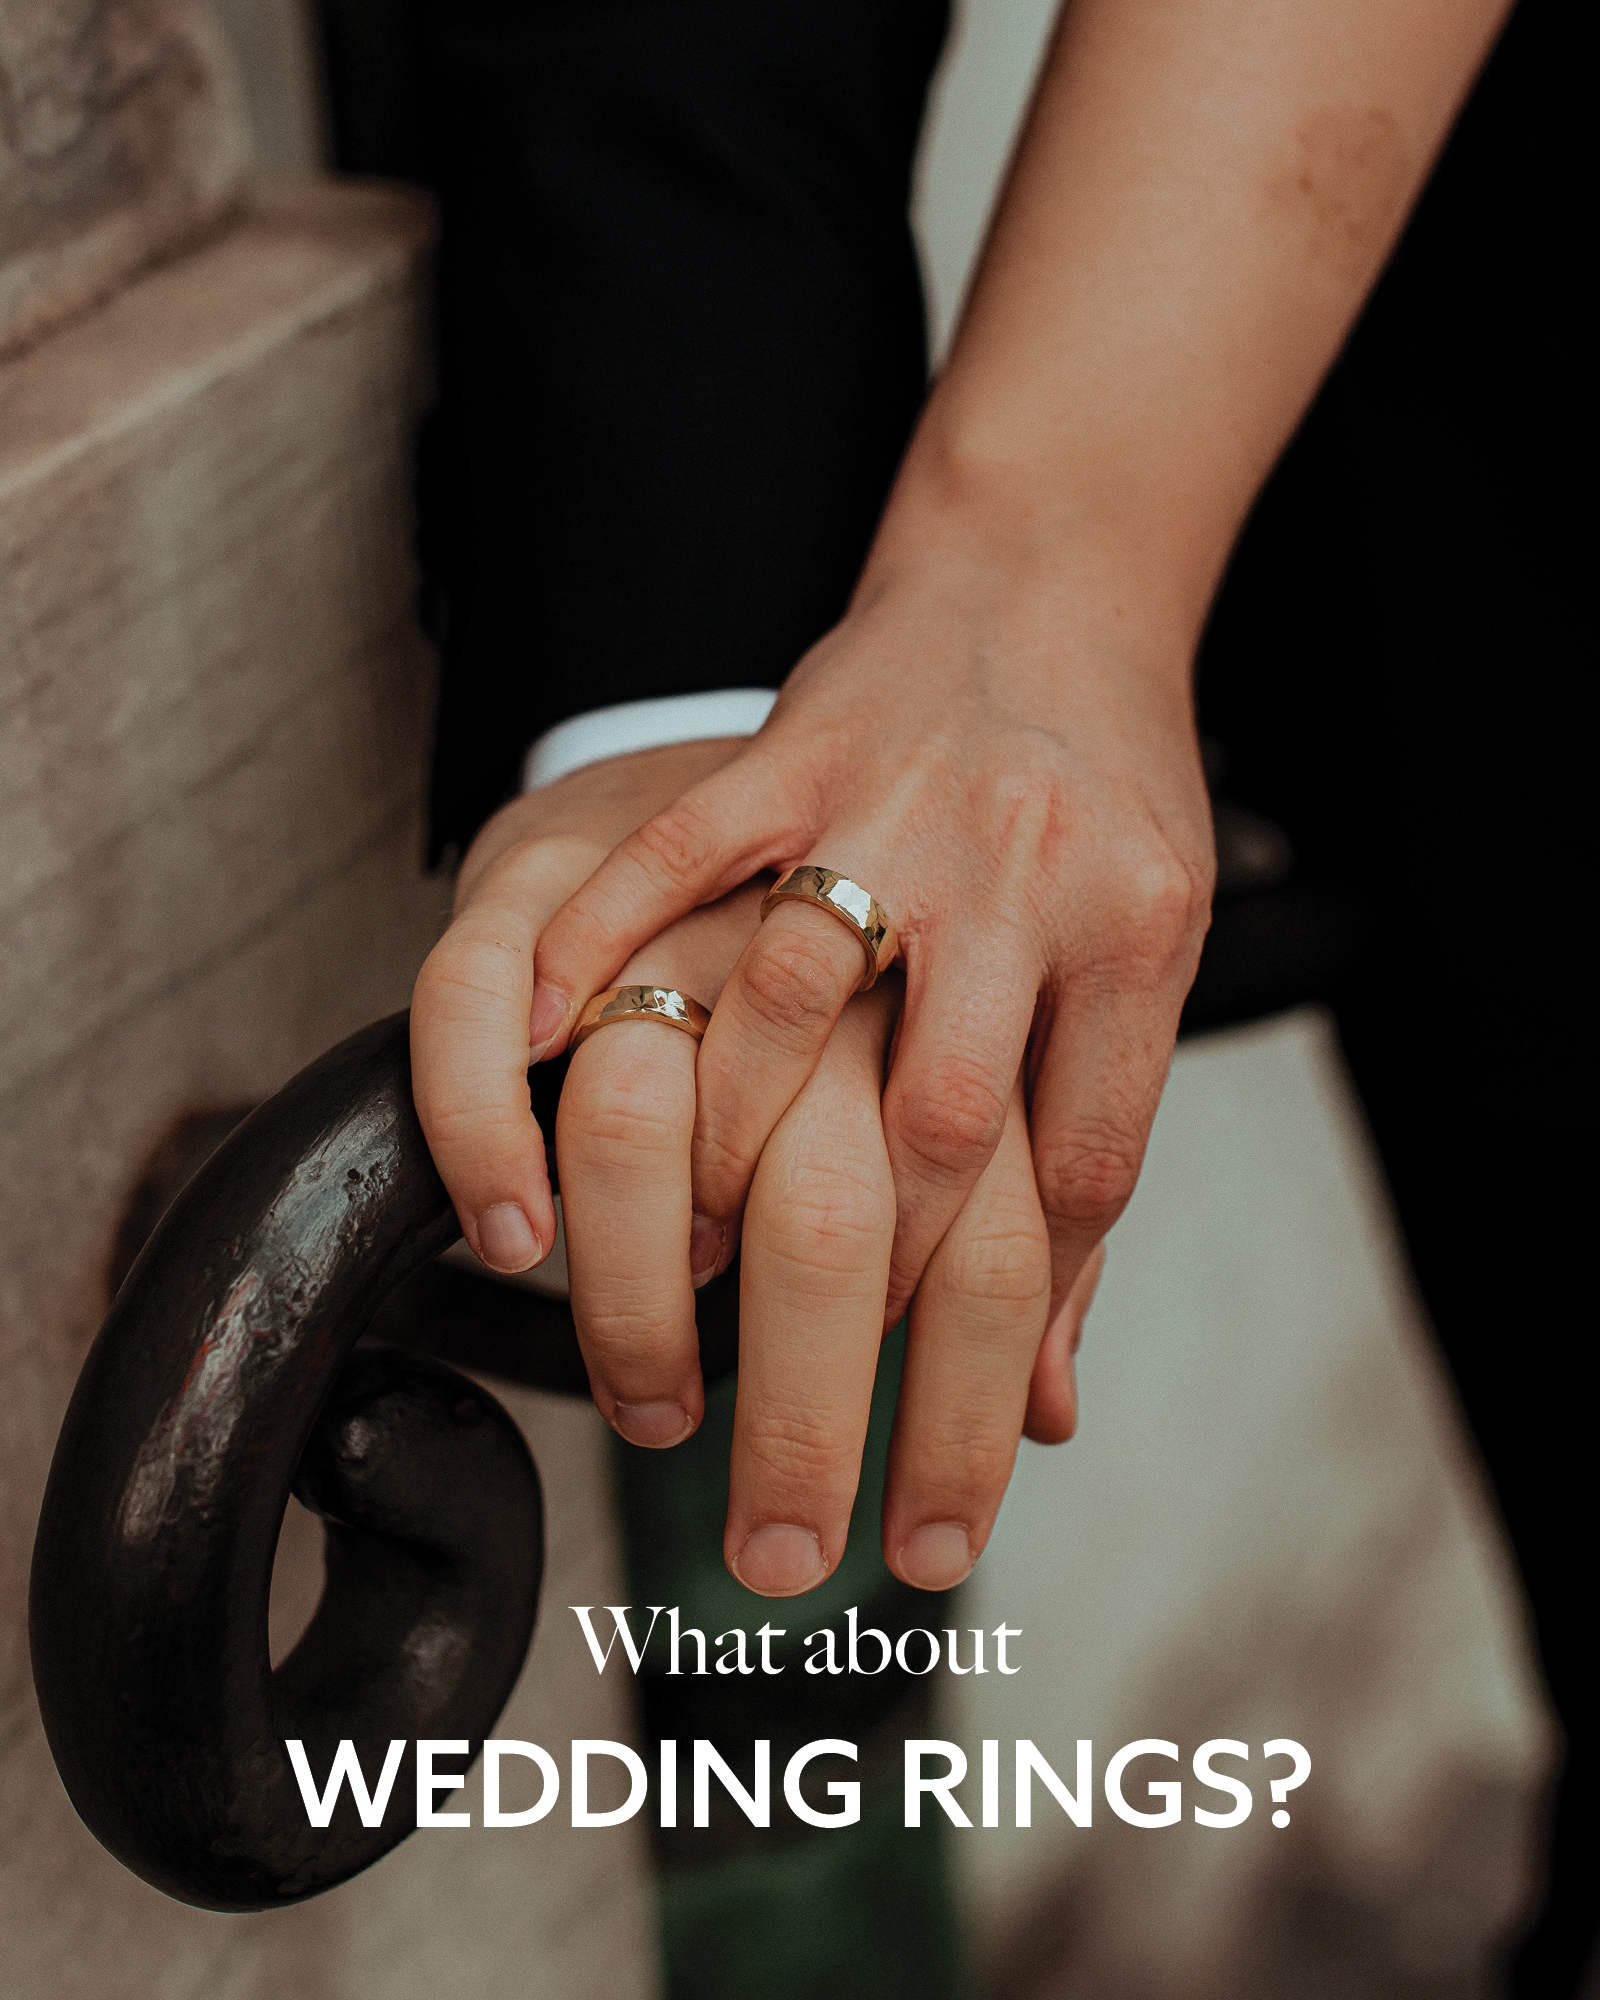 choosing wedding rings is a unique experience. This is our considerations for choosing wedding rings.